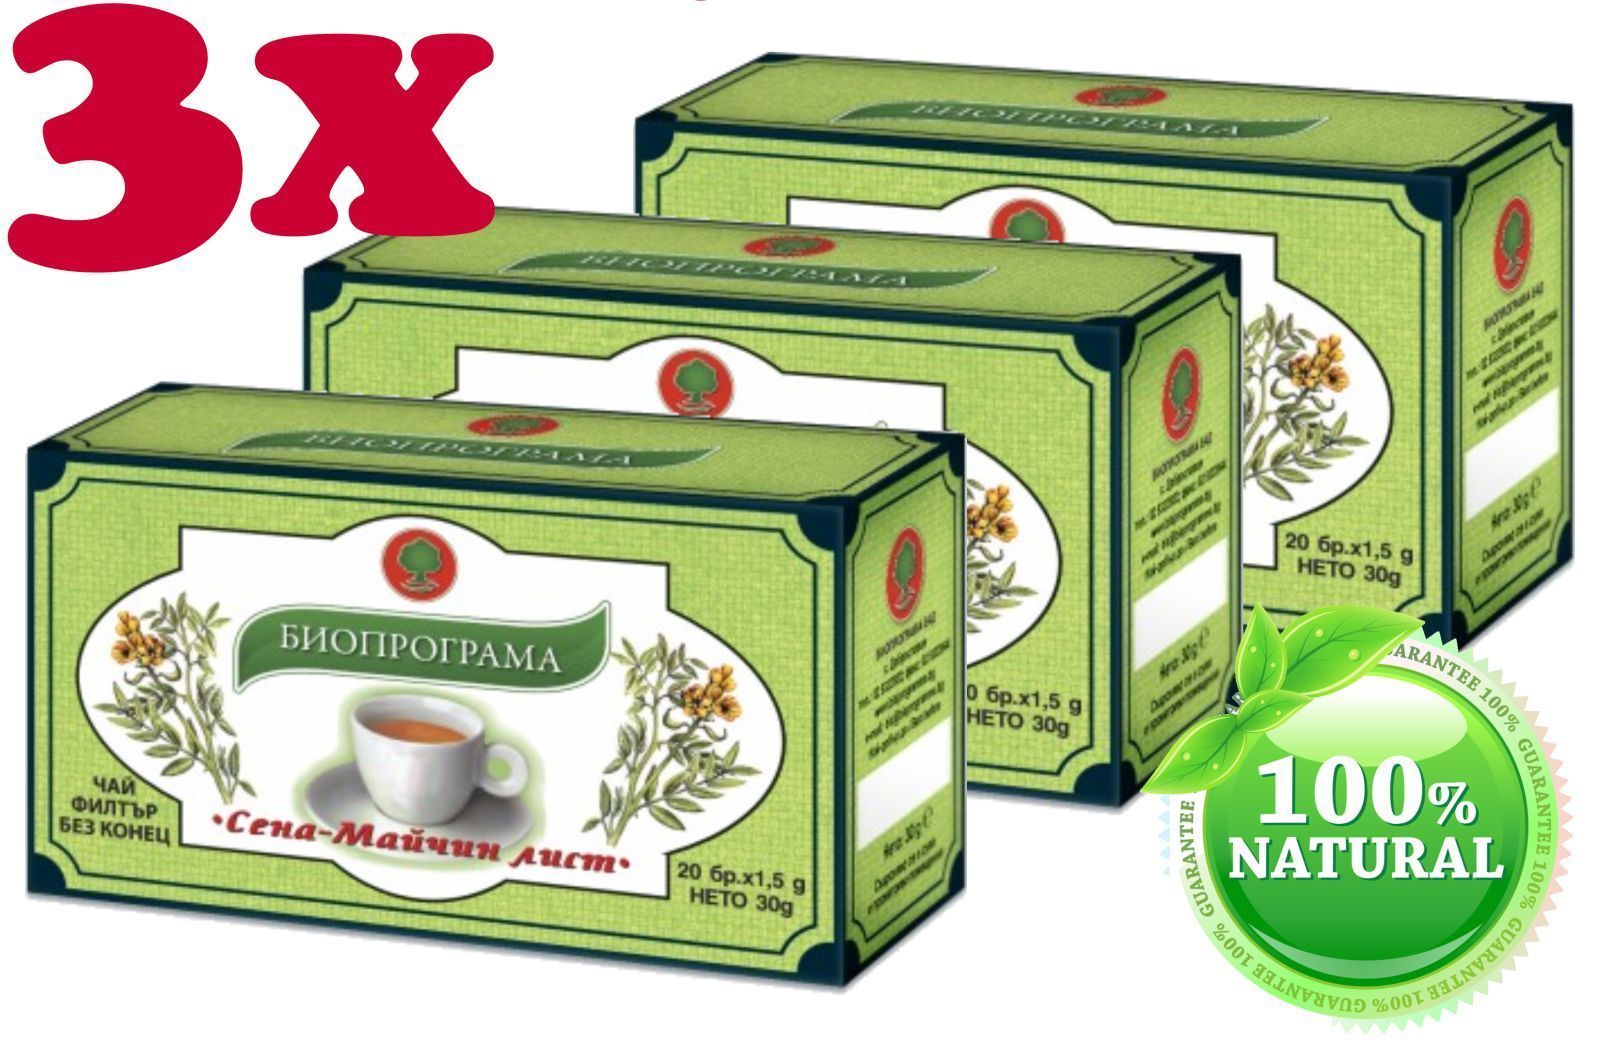 Colon Detox-Weight-Loss SENNA Cleansing Laxative TEA New 3-Boxes 60-Bags Top-Price title=